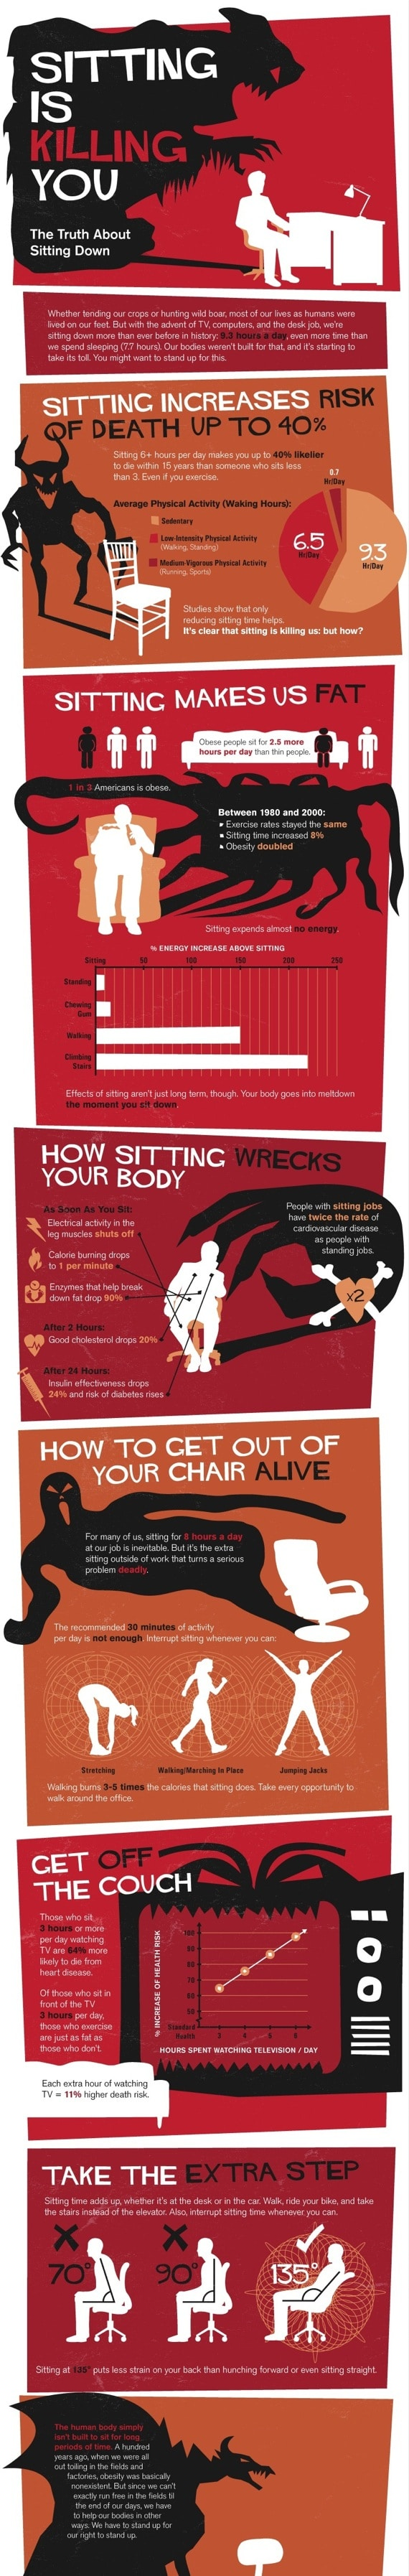 Sitting Is Killing You by Visual.ly